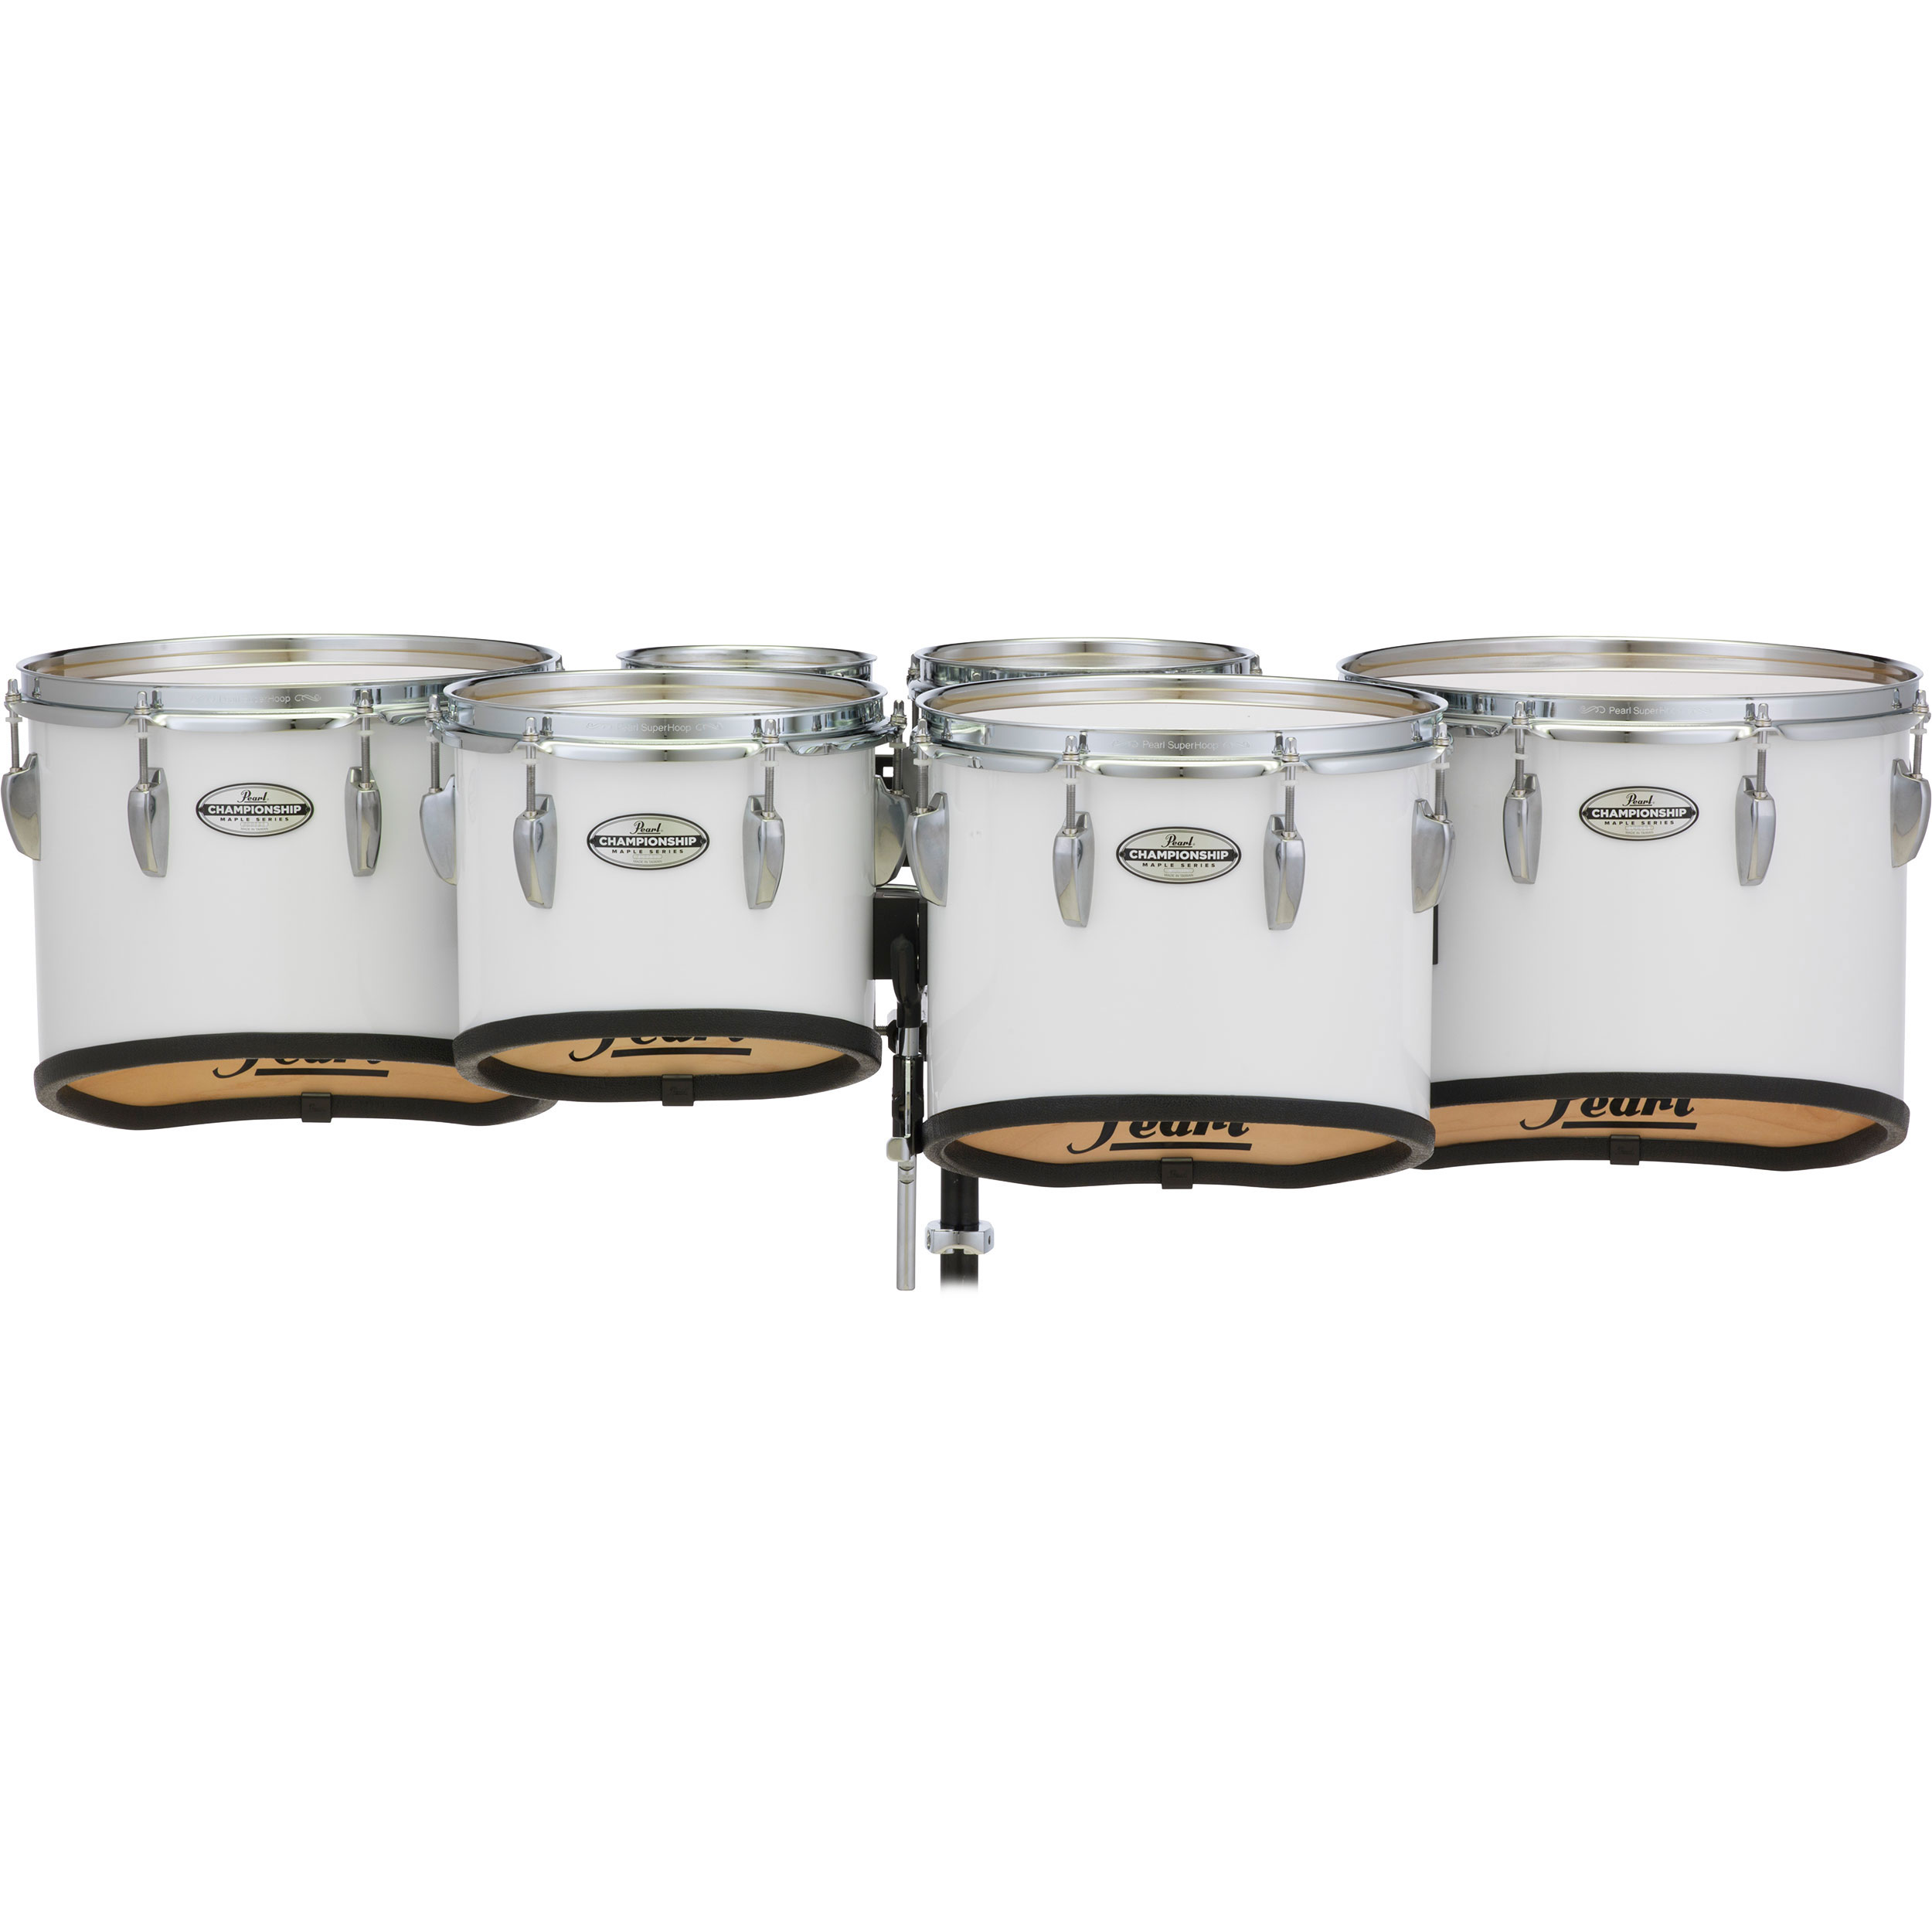 "Pearl 6-6-10-12-13-14"" PMTMS Championship Maple Shallow-Cut Marching Tenors in Wrap Finish"